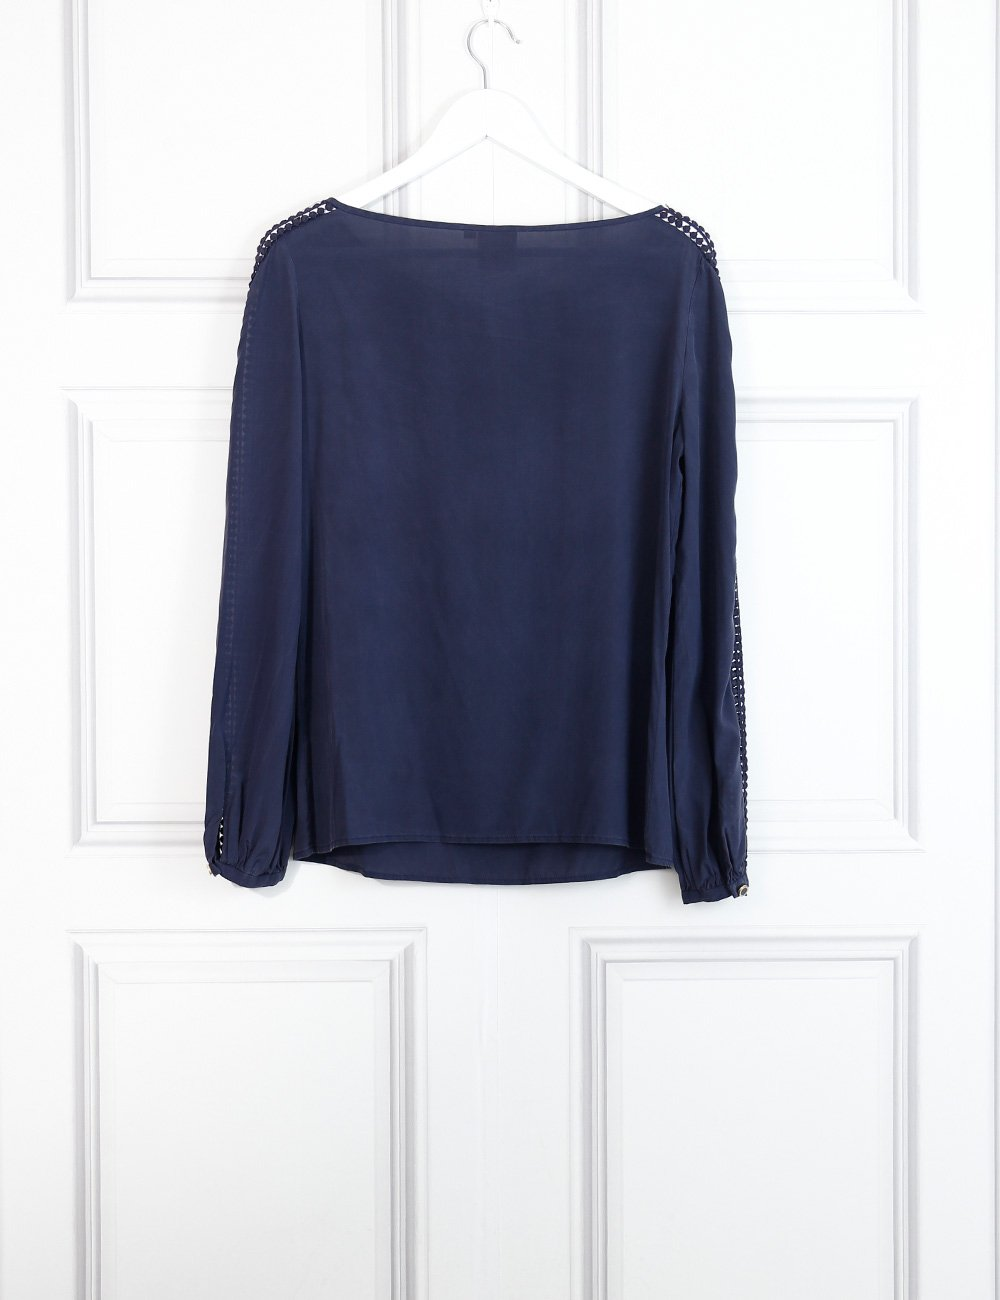 Tory Burch navy blue crochet lace blouse 10 Uk- My Wardrobe Mistakes